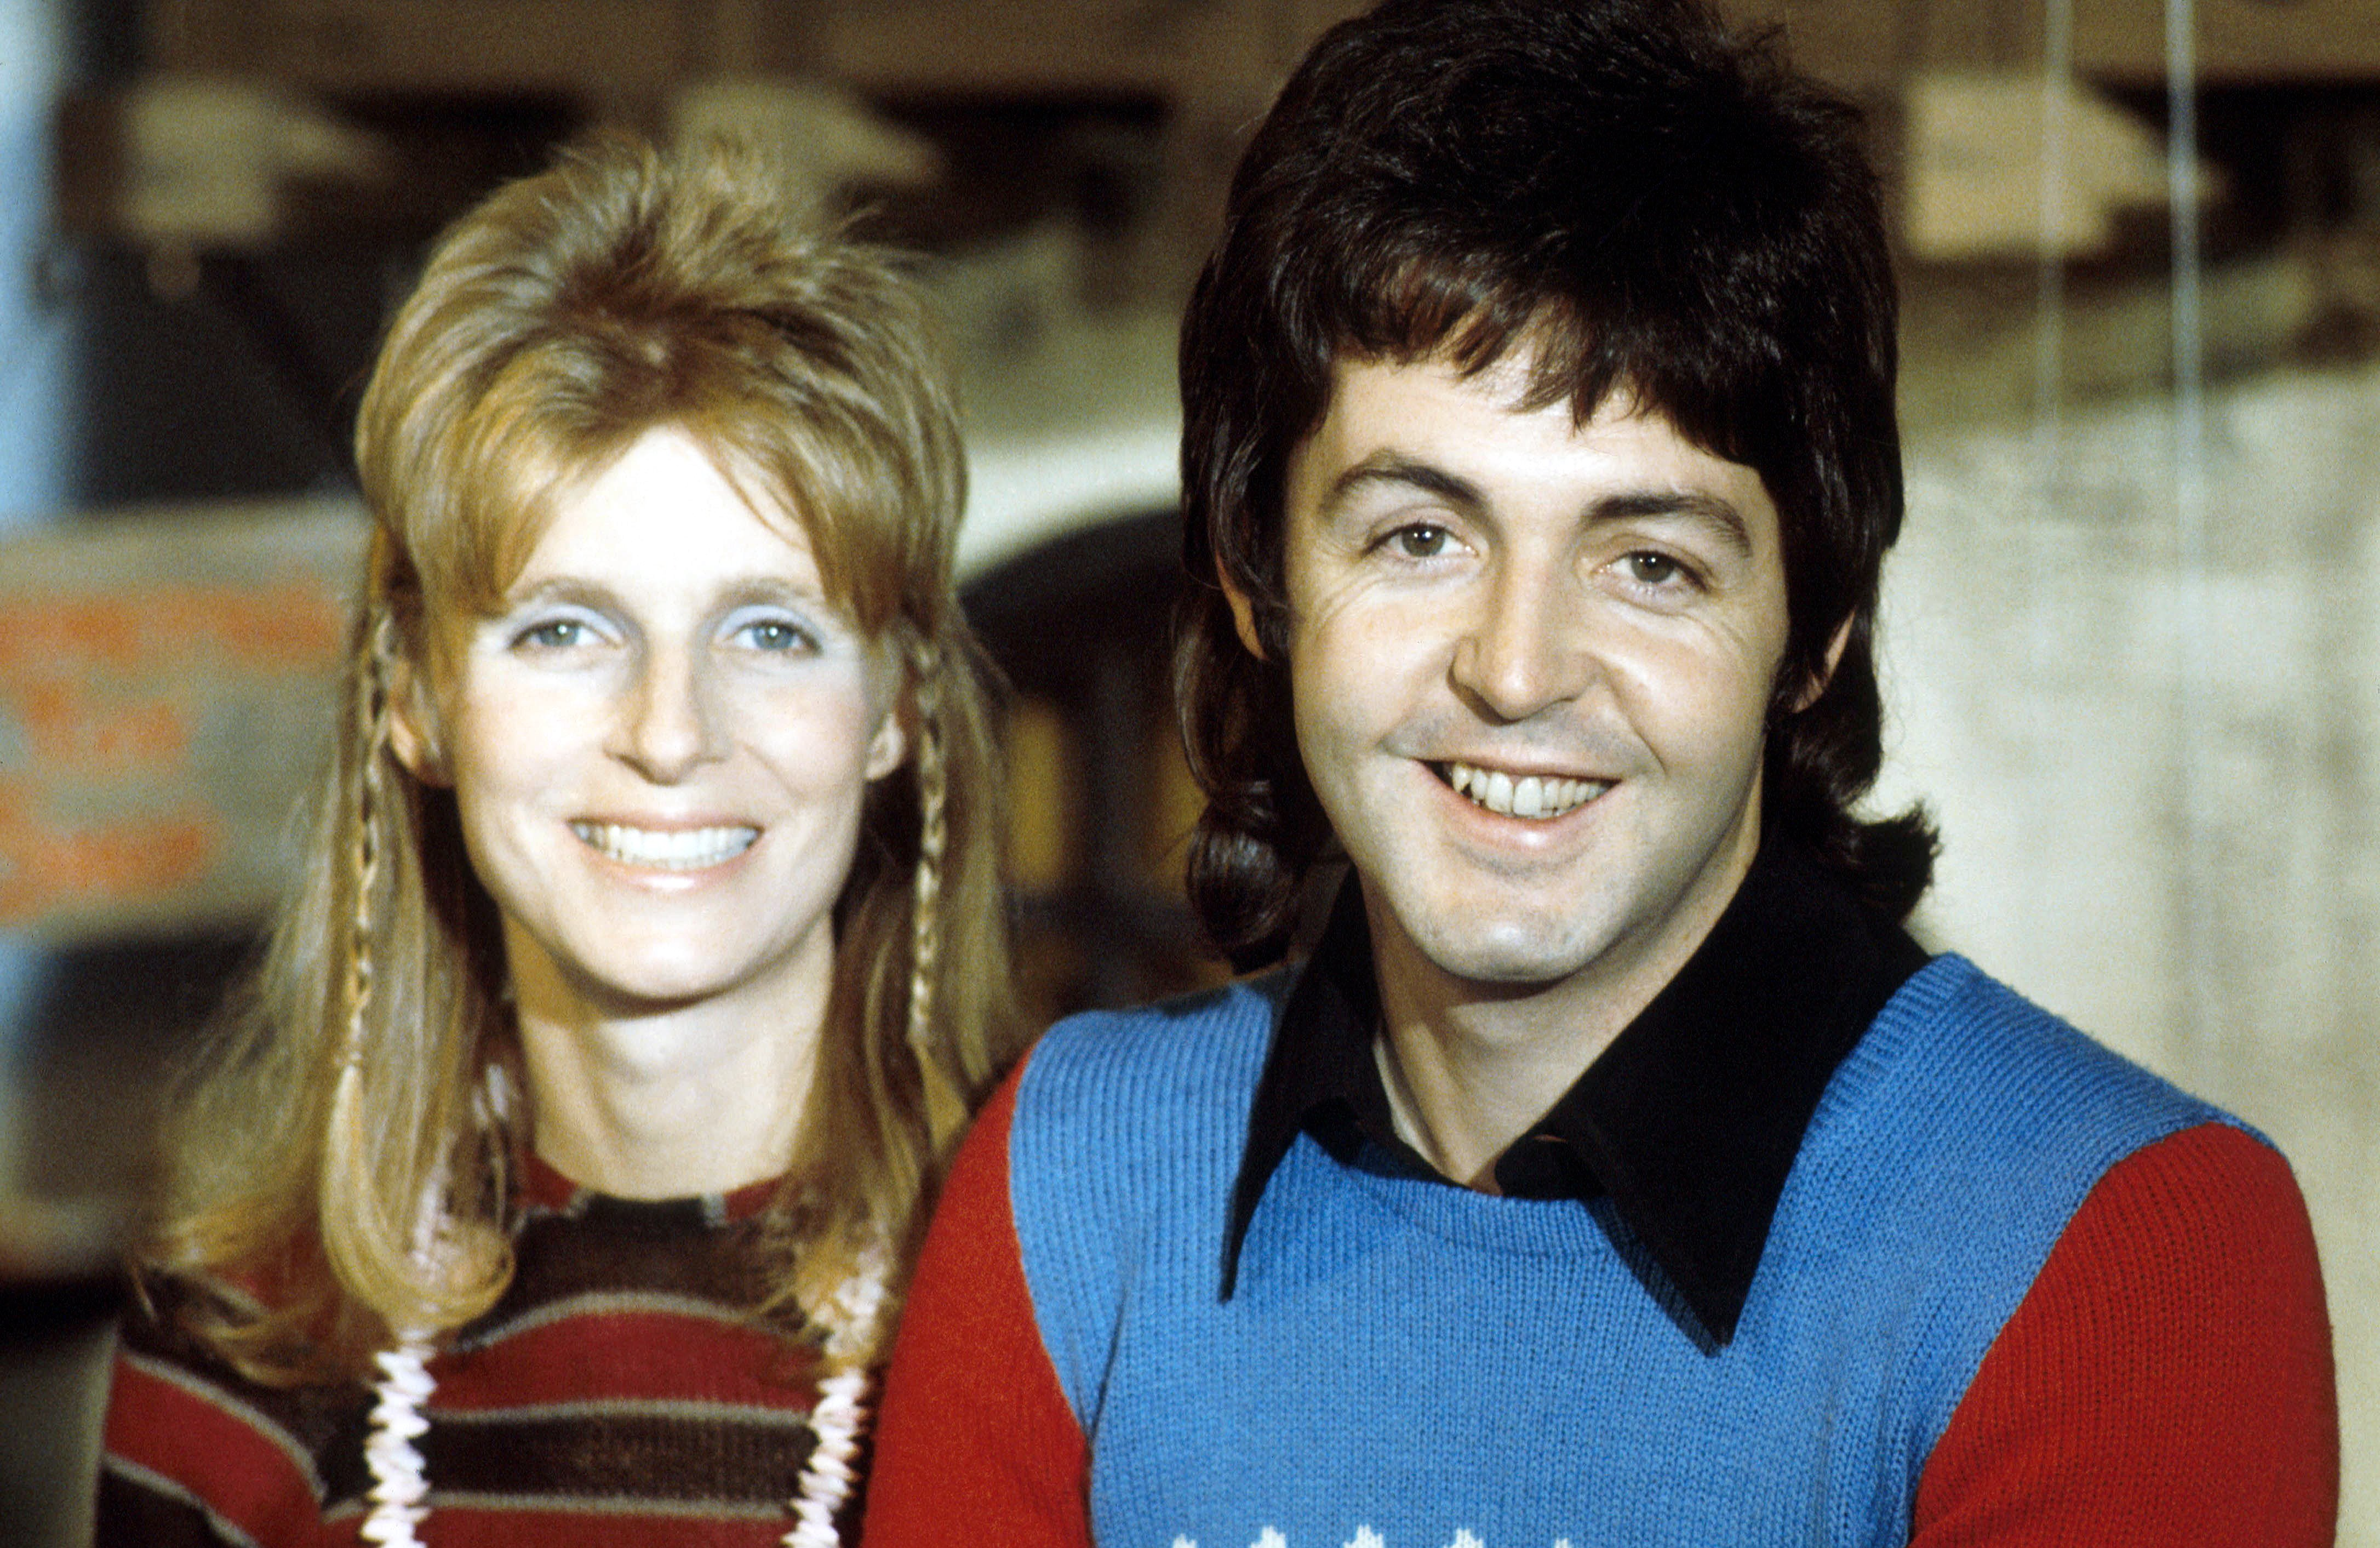 Linda McCartney (1941 - 1998) and husband Paul McCartney beaming in a photo captured in 1973   Photo: Getty Images